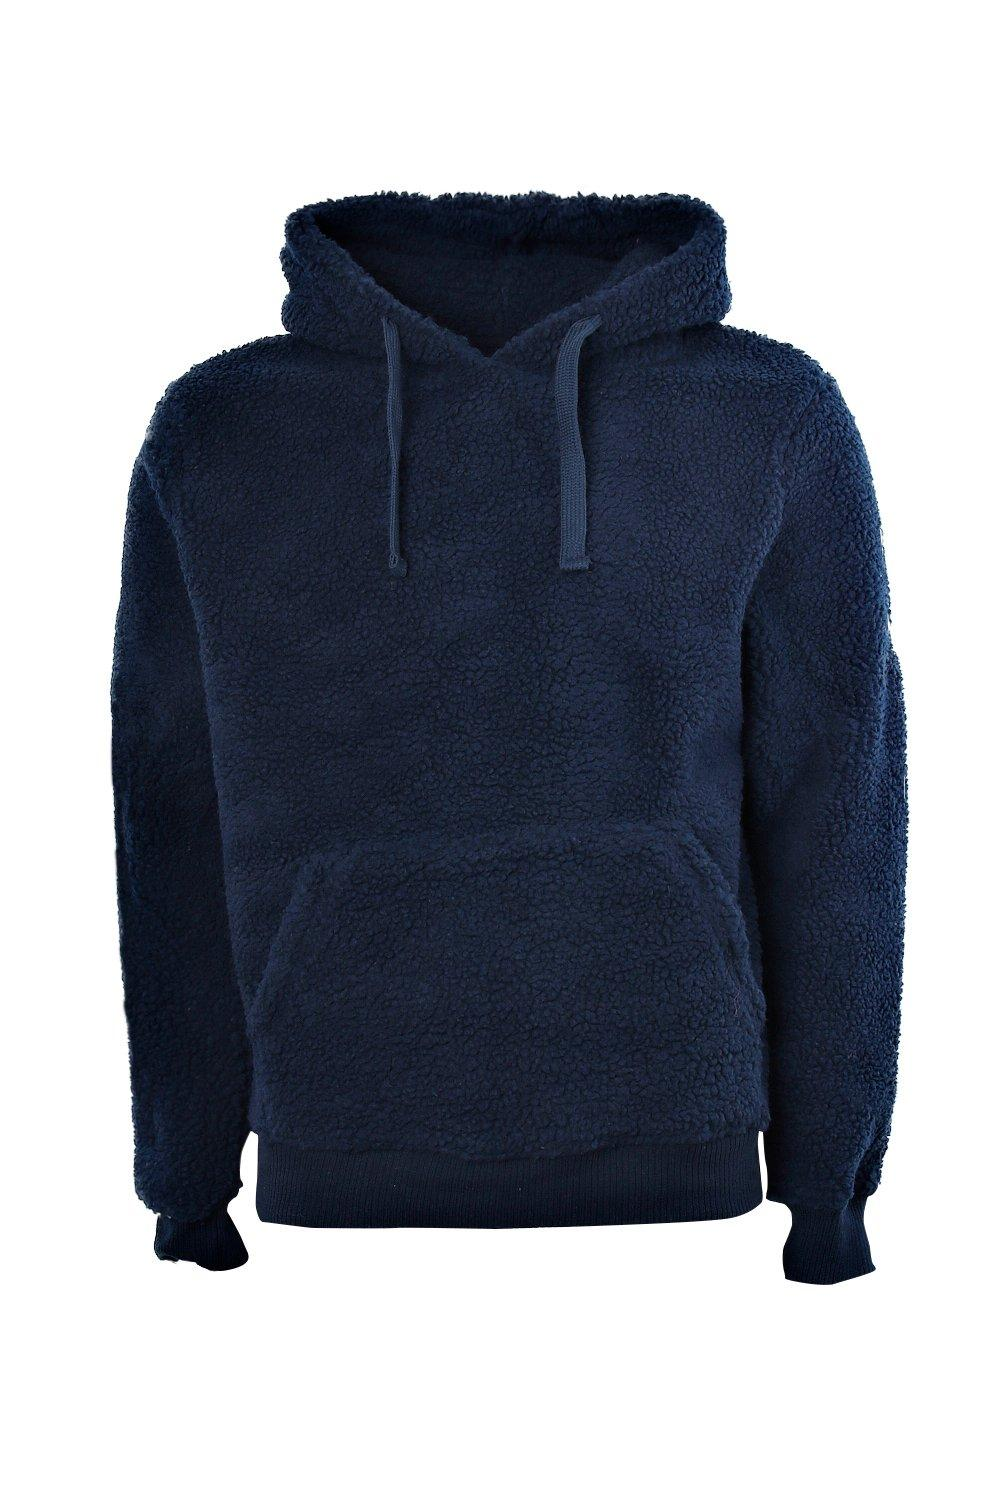 boohooMAN navy Borg Over the Head Hoodie